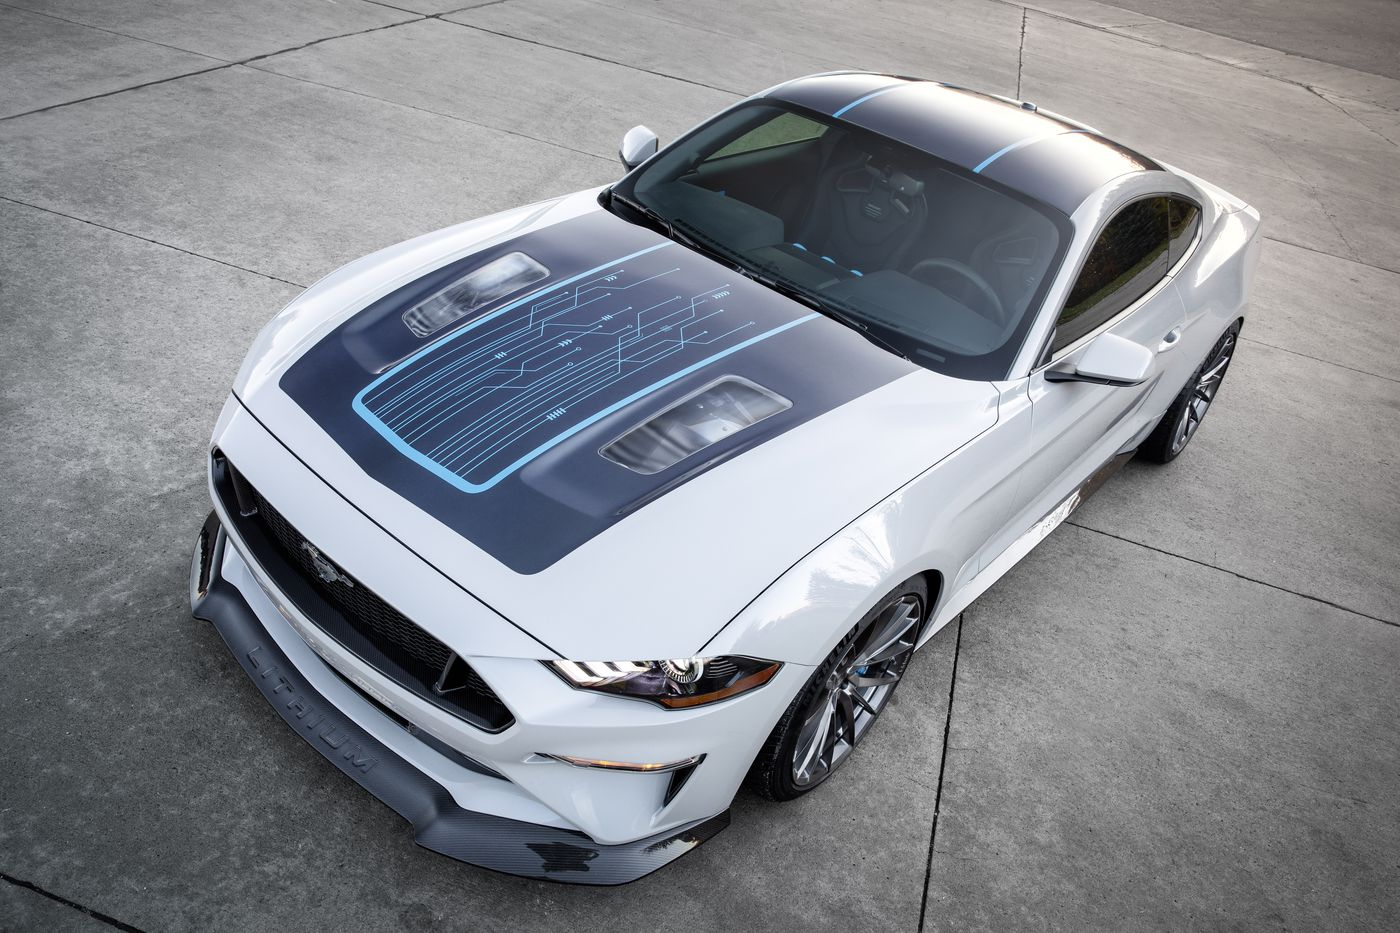 Ford Made An Electric Mustang With A Manual Transmission The Verge